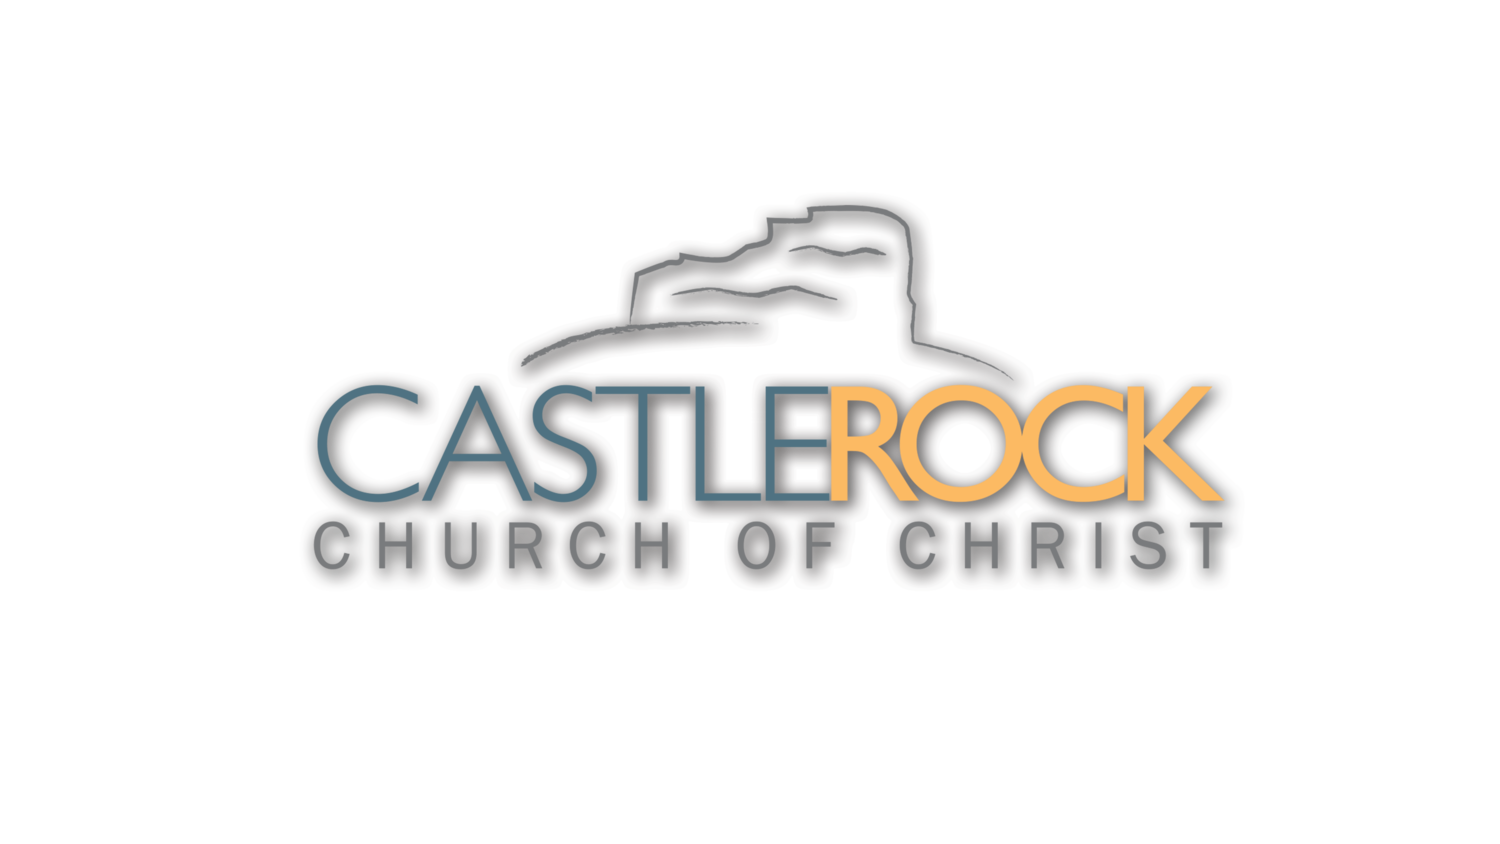 Castle Rock Church of Christ